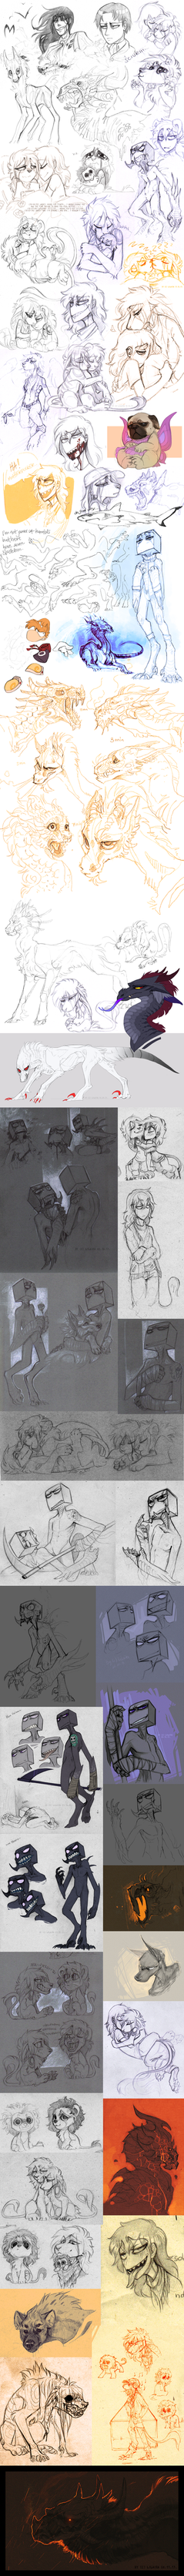 Sketch dump 52 by LiLaiRa